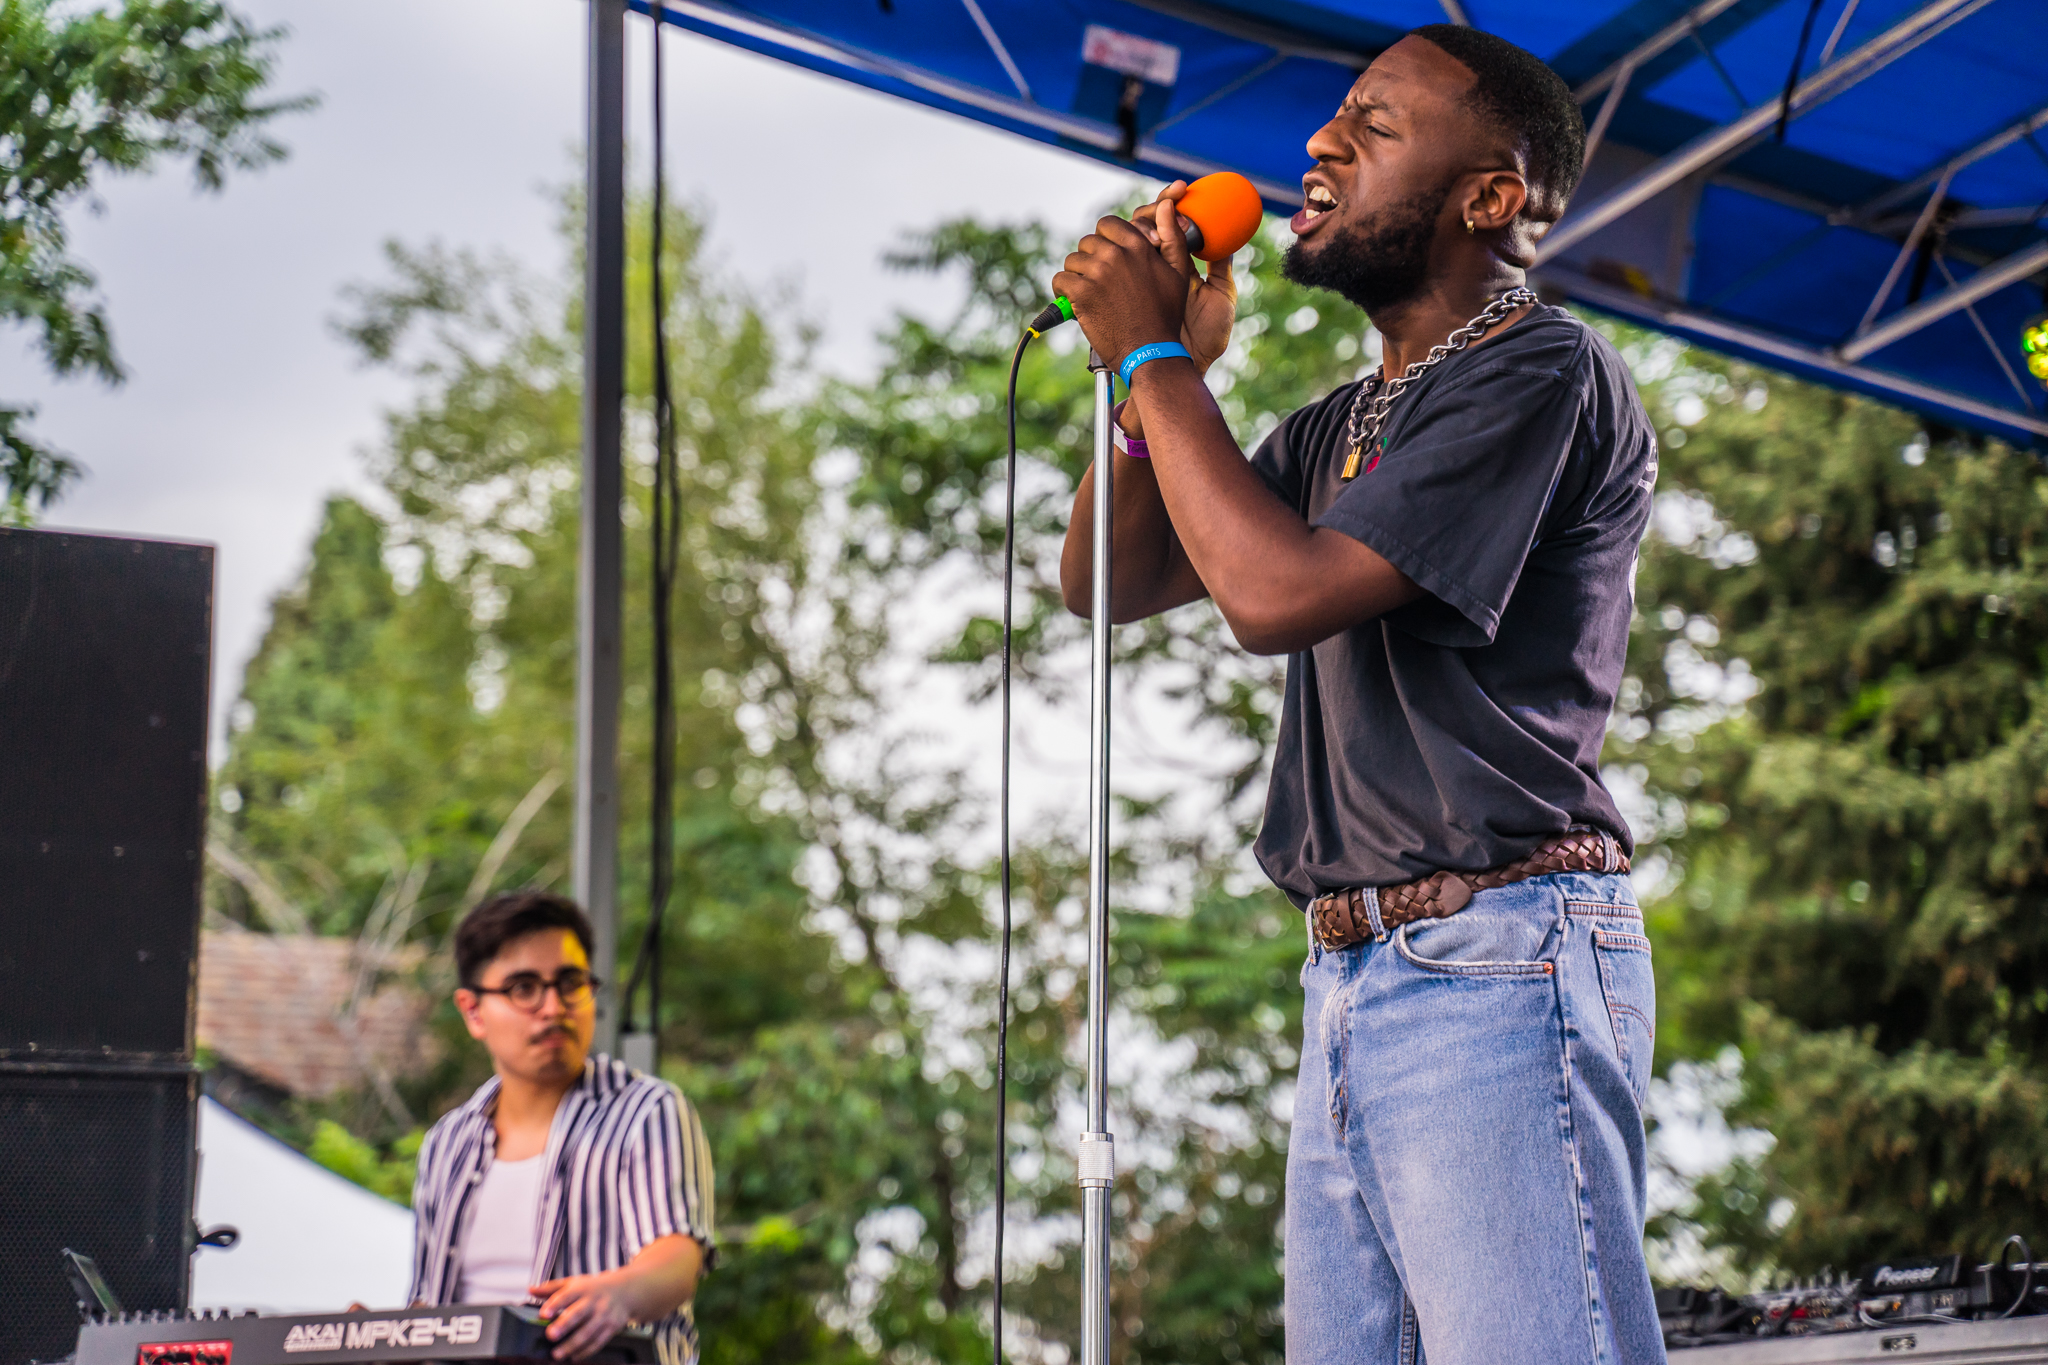 Texas emcee Deezie Brown shines. (Photo Credit: Robert Castro)